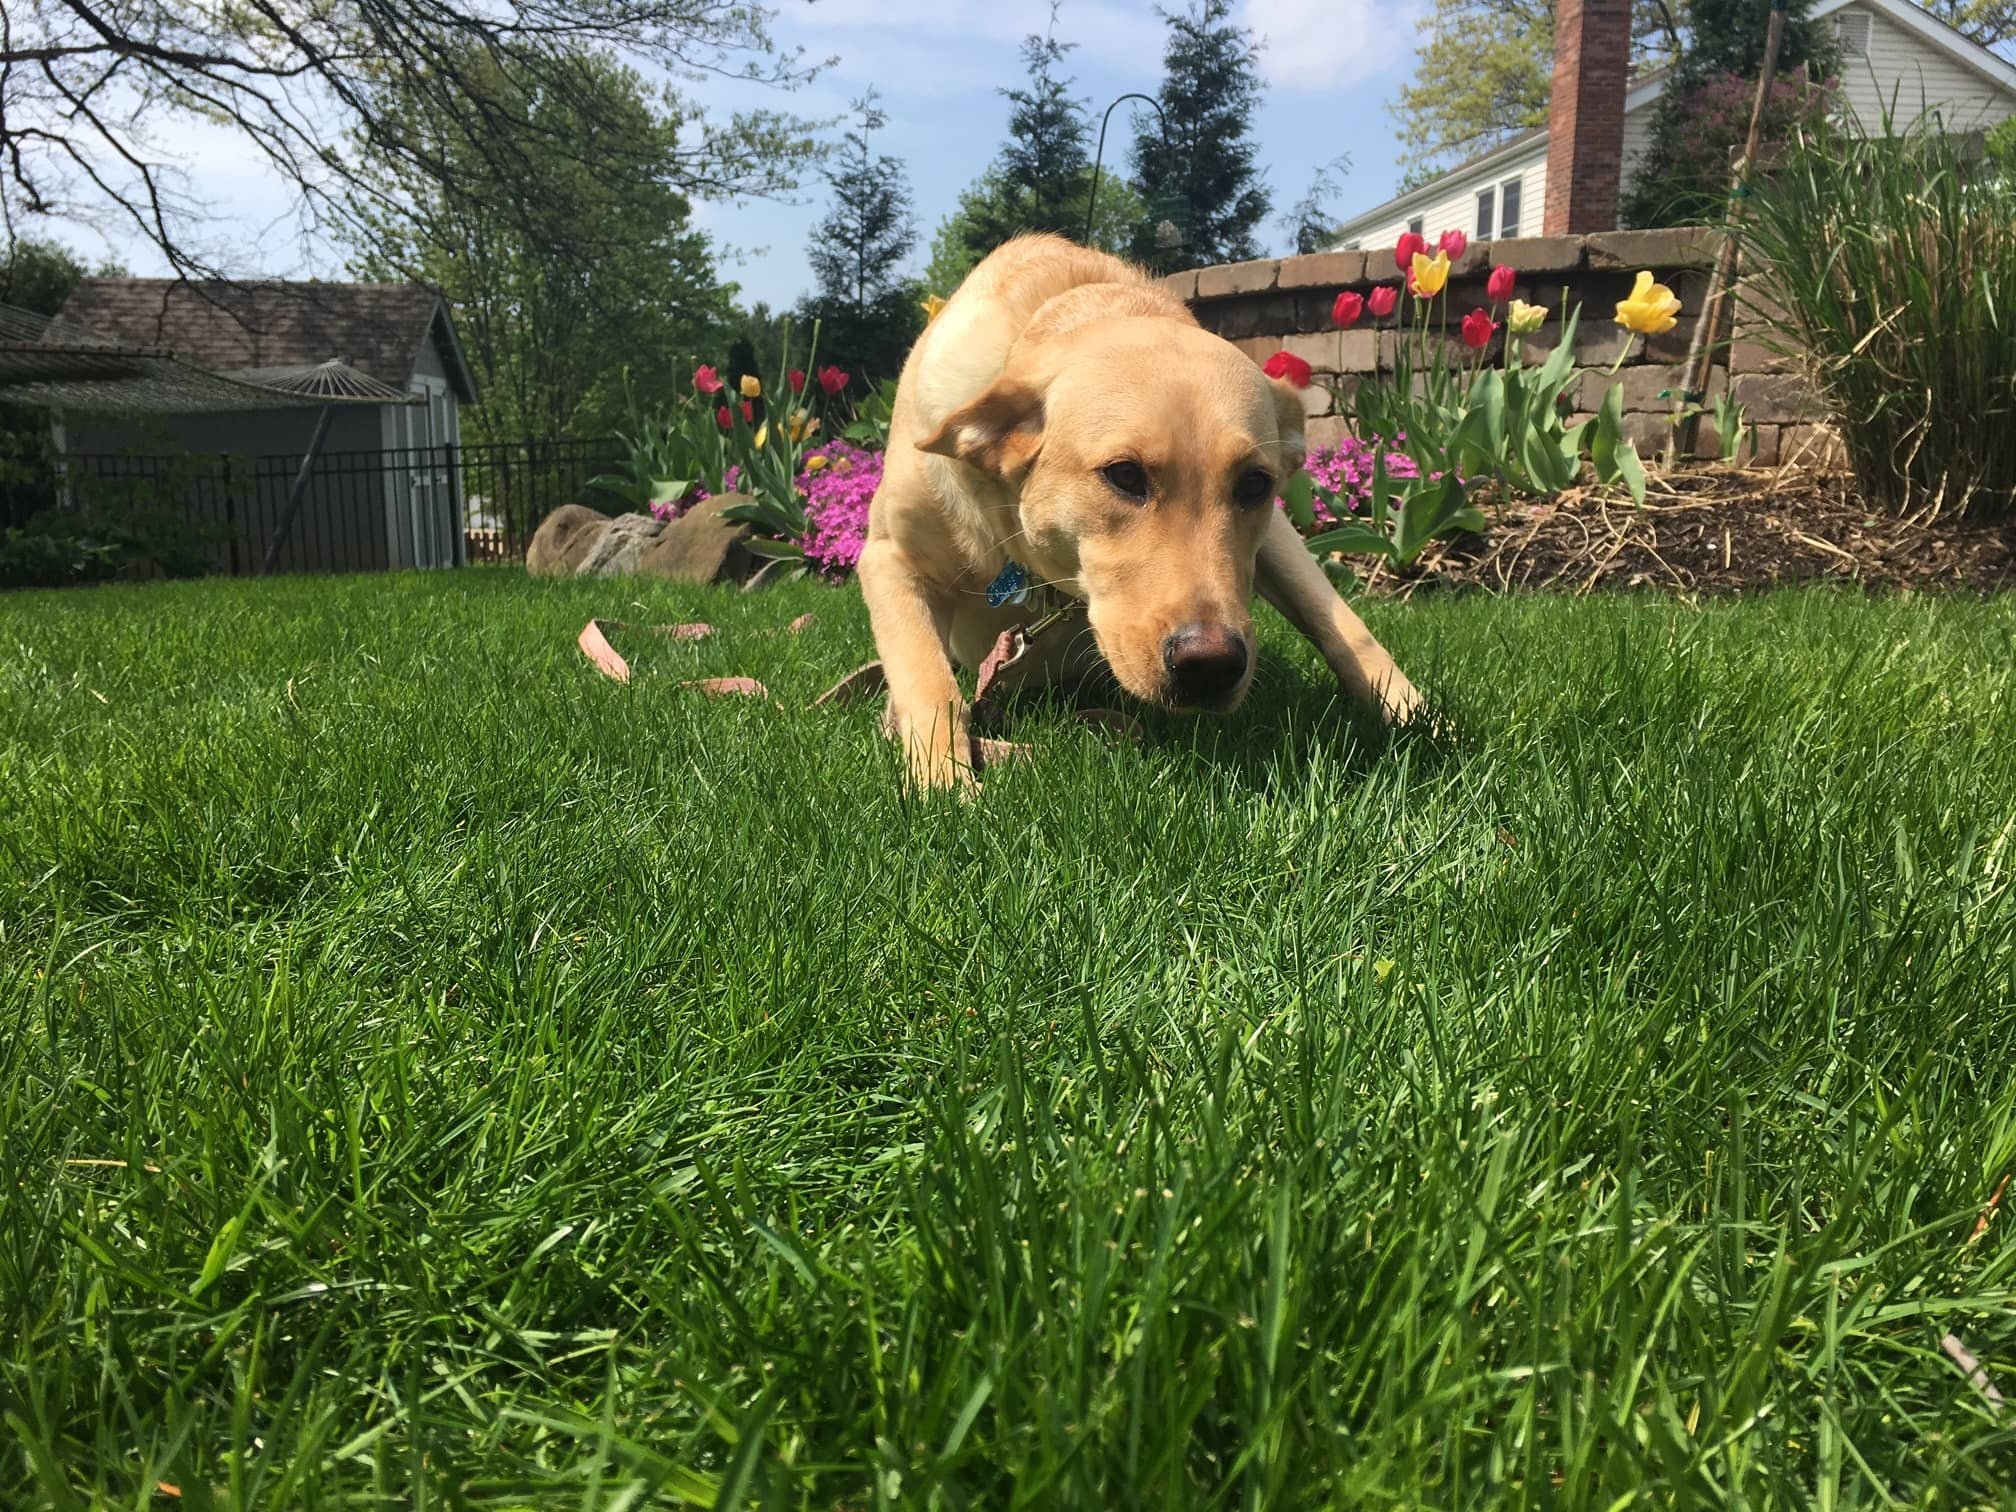 Practical Tips on Lawn Care (From a Landscaper and Pet Owner)